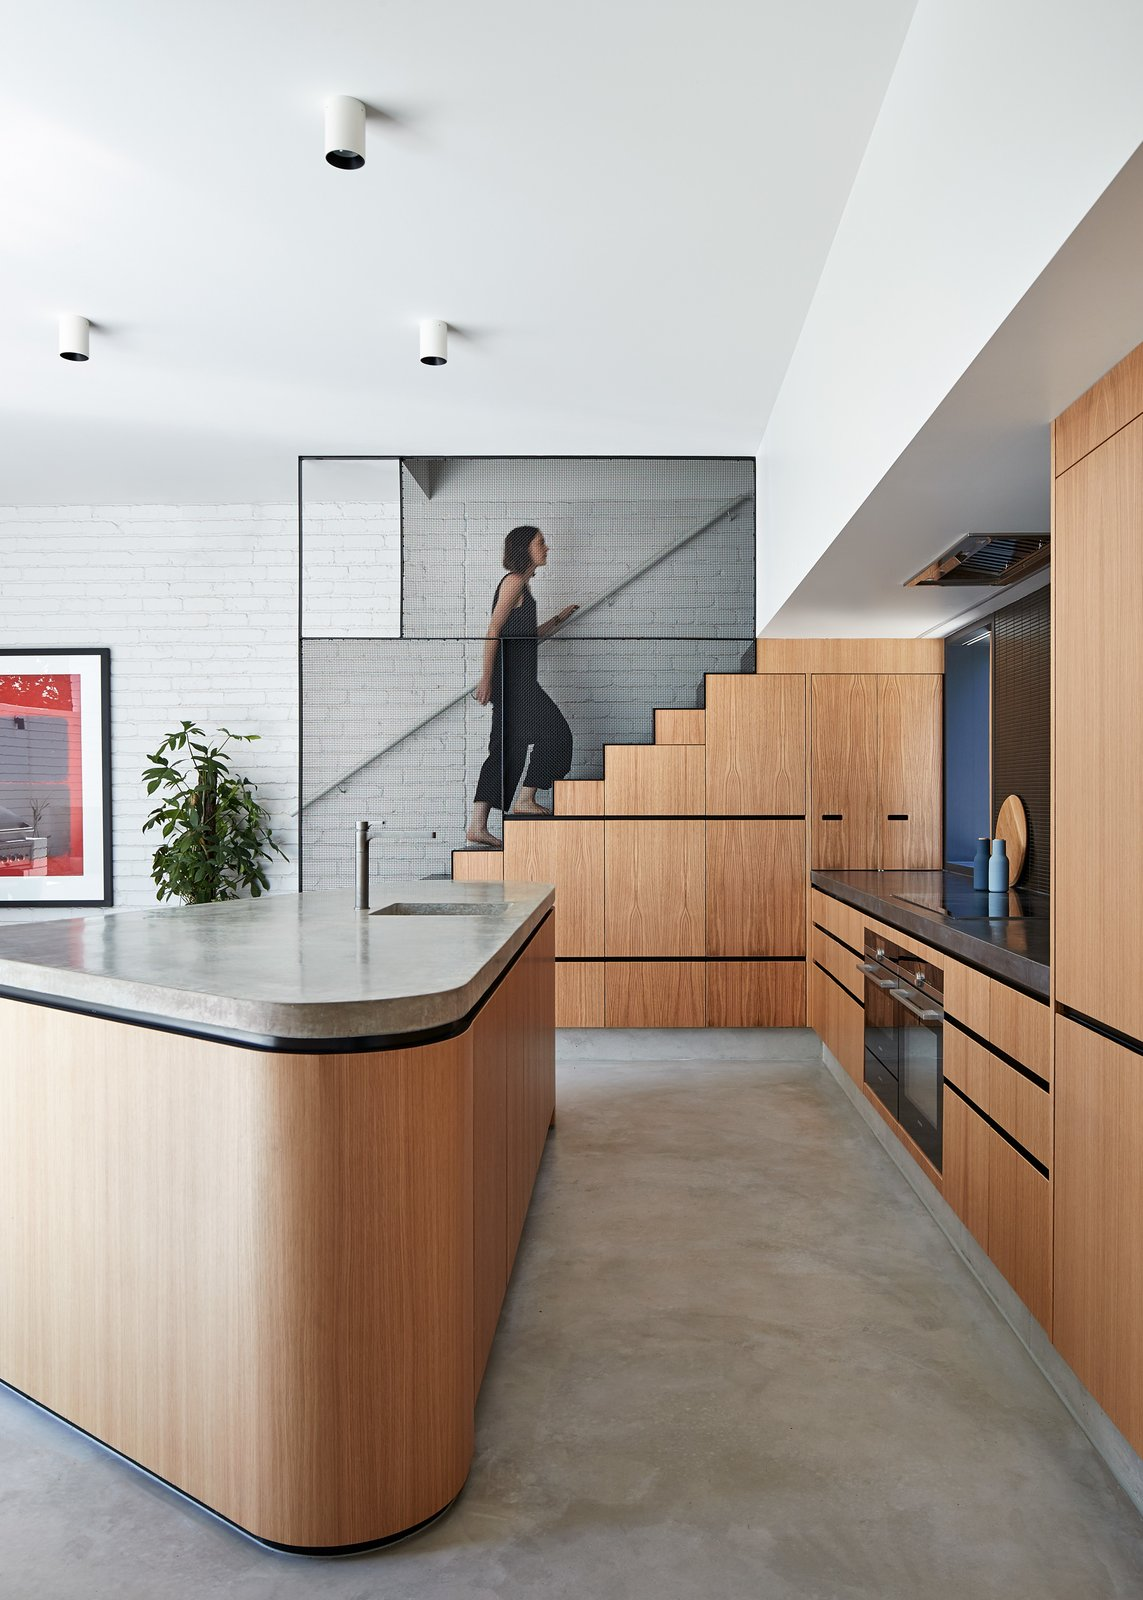 Kitchen, Concrete, Cooktops, Concrete, Refrigerator, Wood, Range Hood, Wall Oven, Ceiling, Concrete, and Undermount A steel mesh balustrade lines the stairway, which leads to the rooftop deck.  Best Kitchen Concrete Cooktops Ceiling Photos